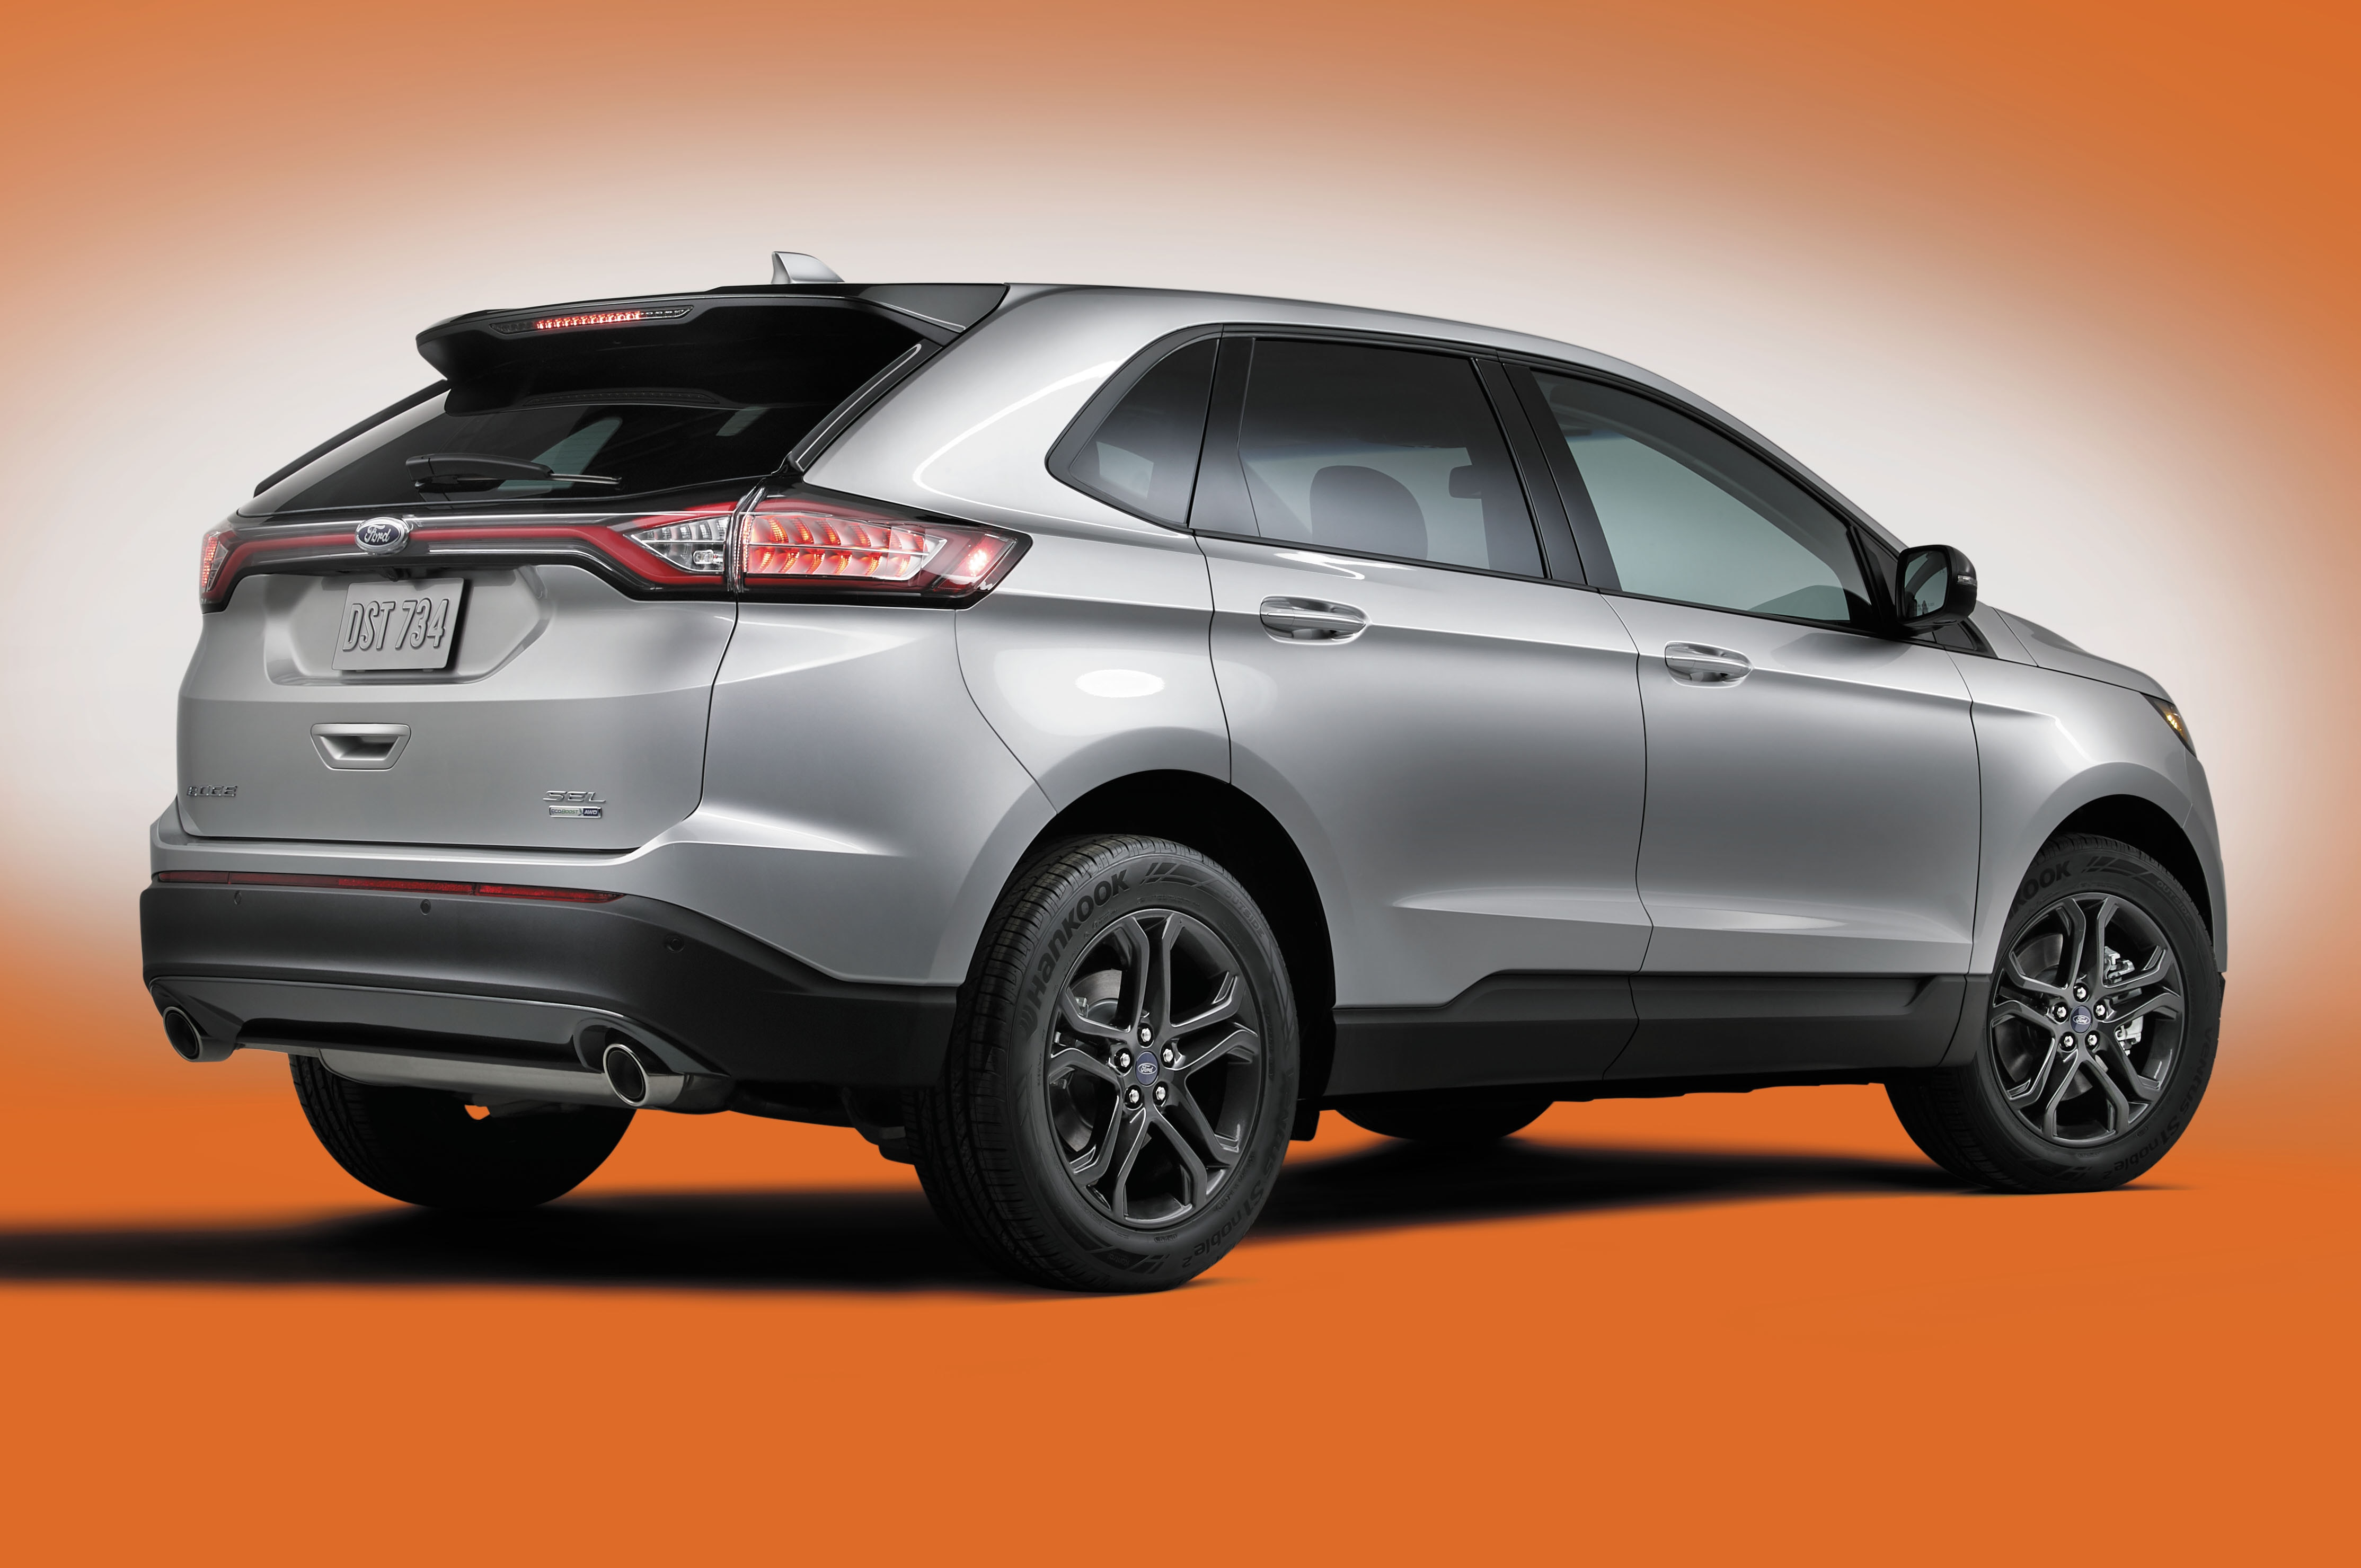 Ford Escape 2Wd >> 2018 Ford Edge Adds SEL Sport Appearance Package ...